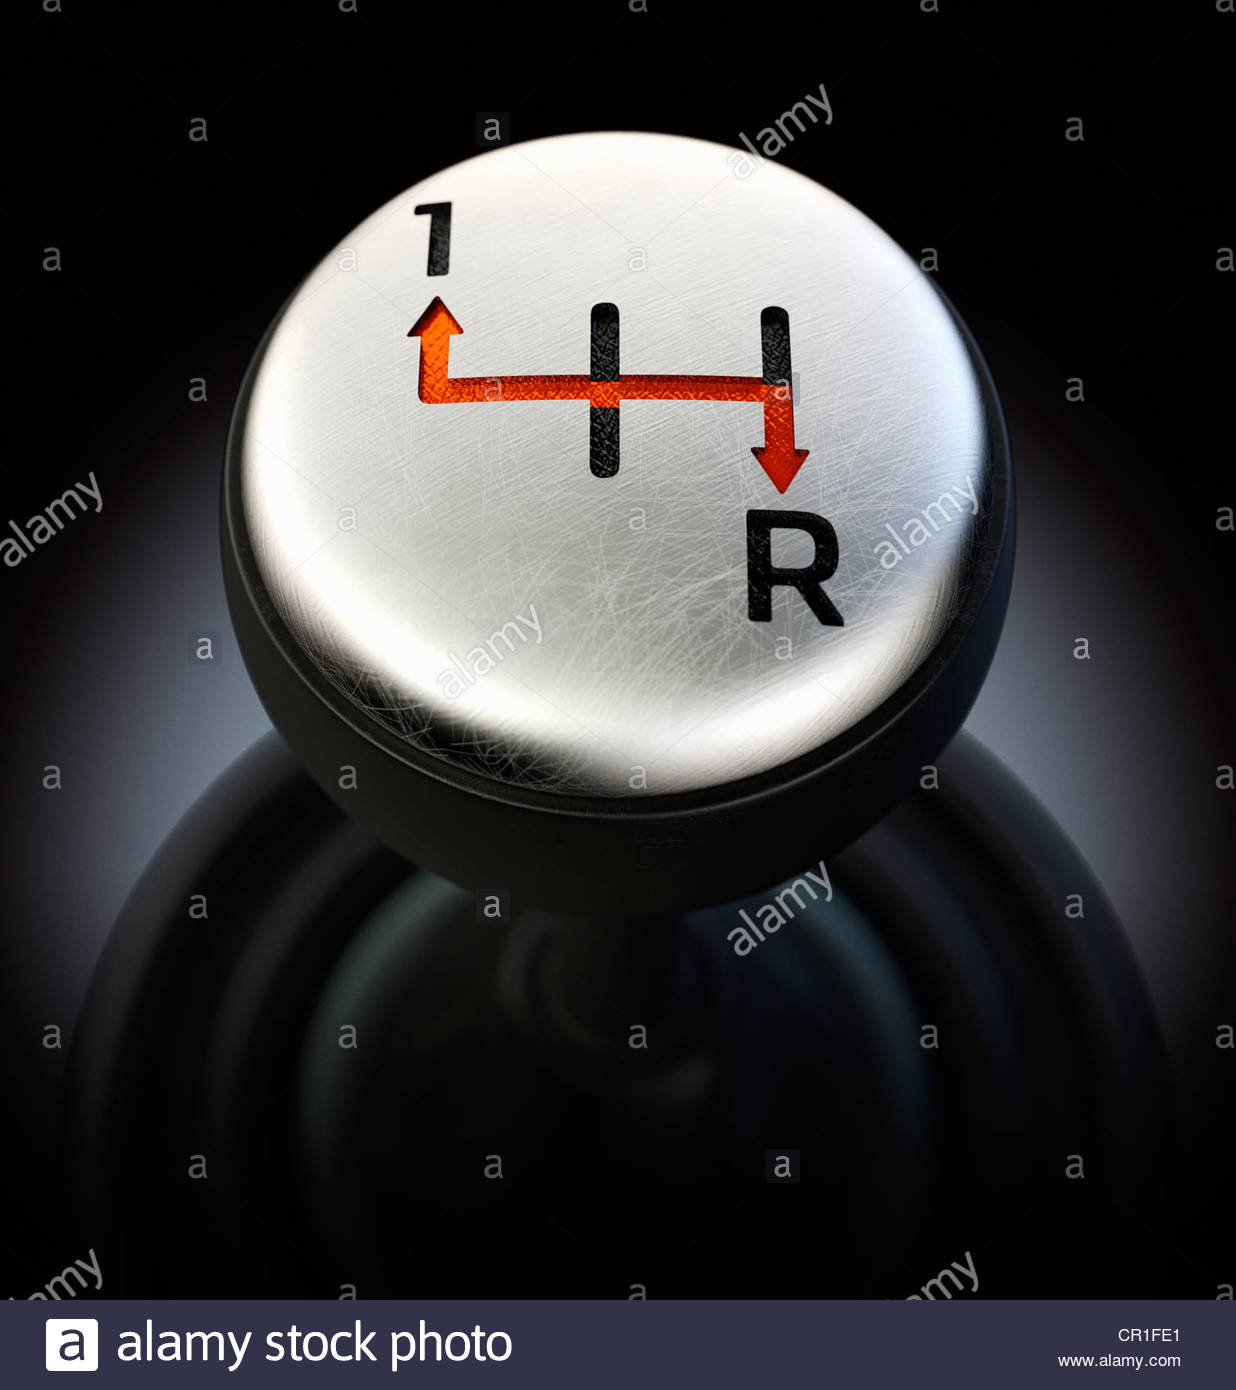 Gearshift showing only forward and reverse options - Stock Image